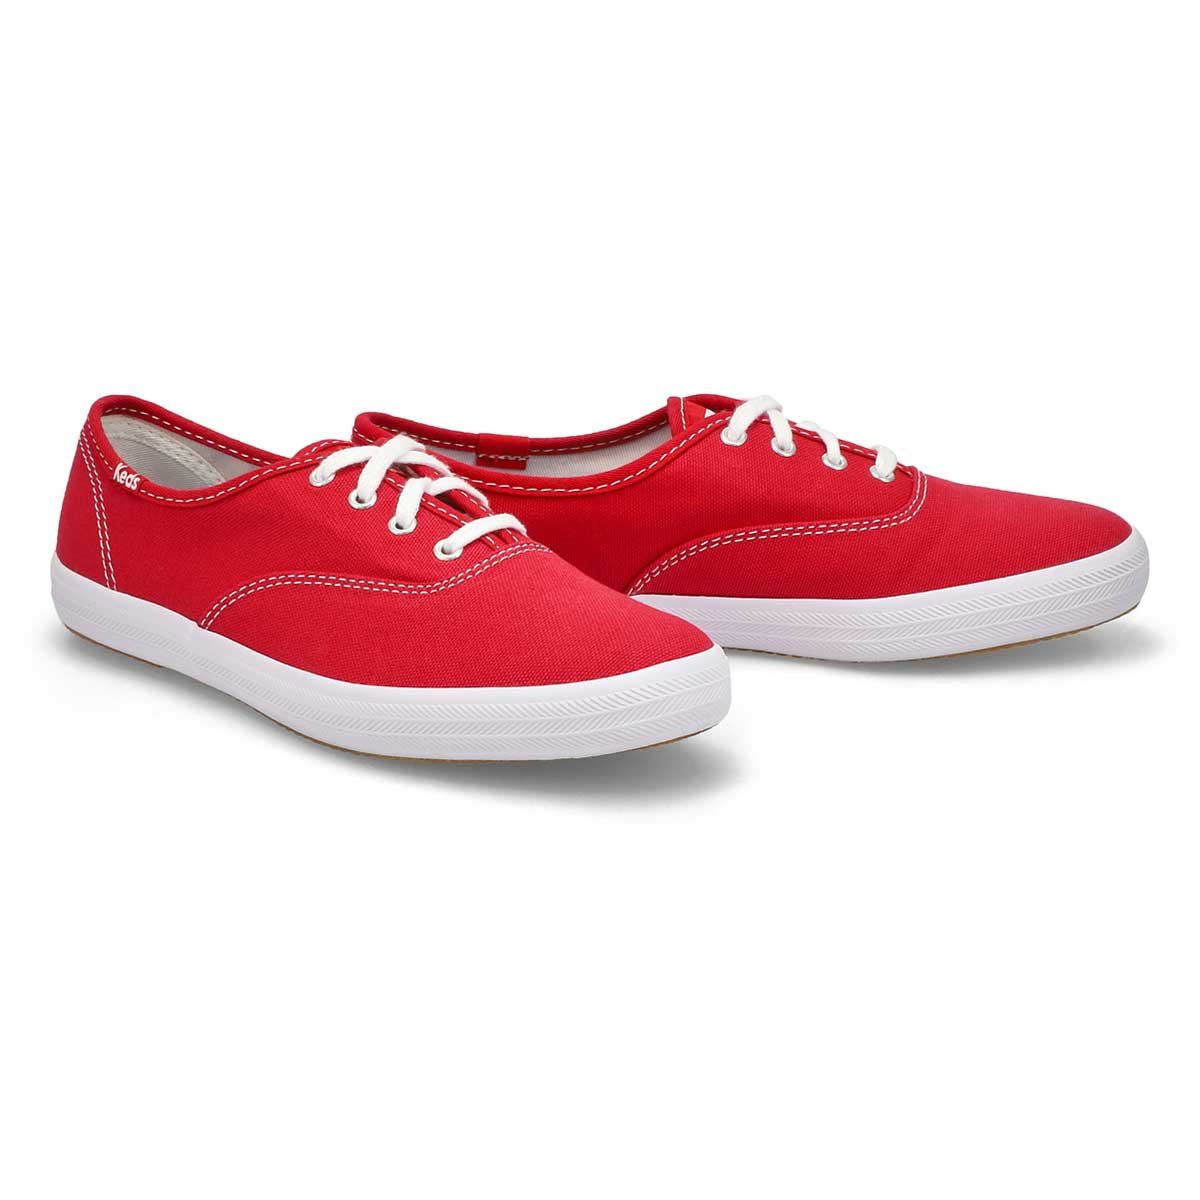 Lds Champion red canvas sneaker